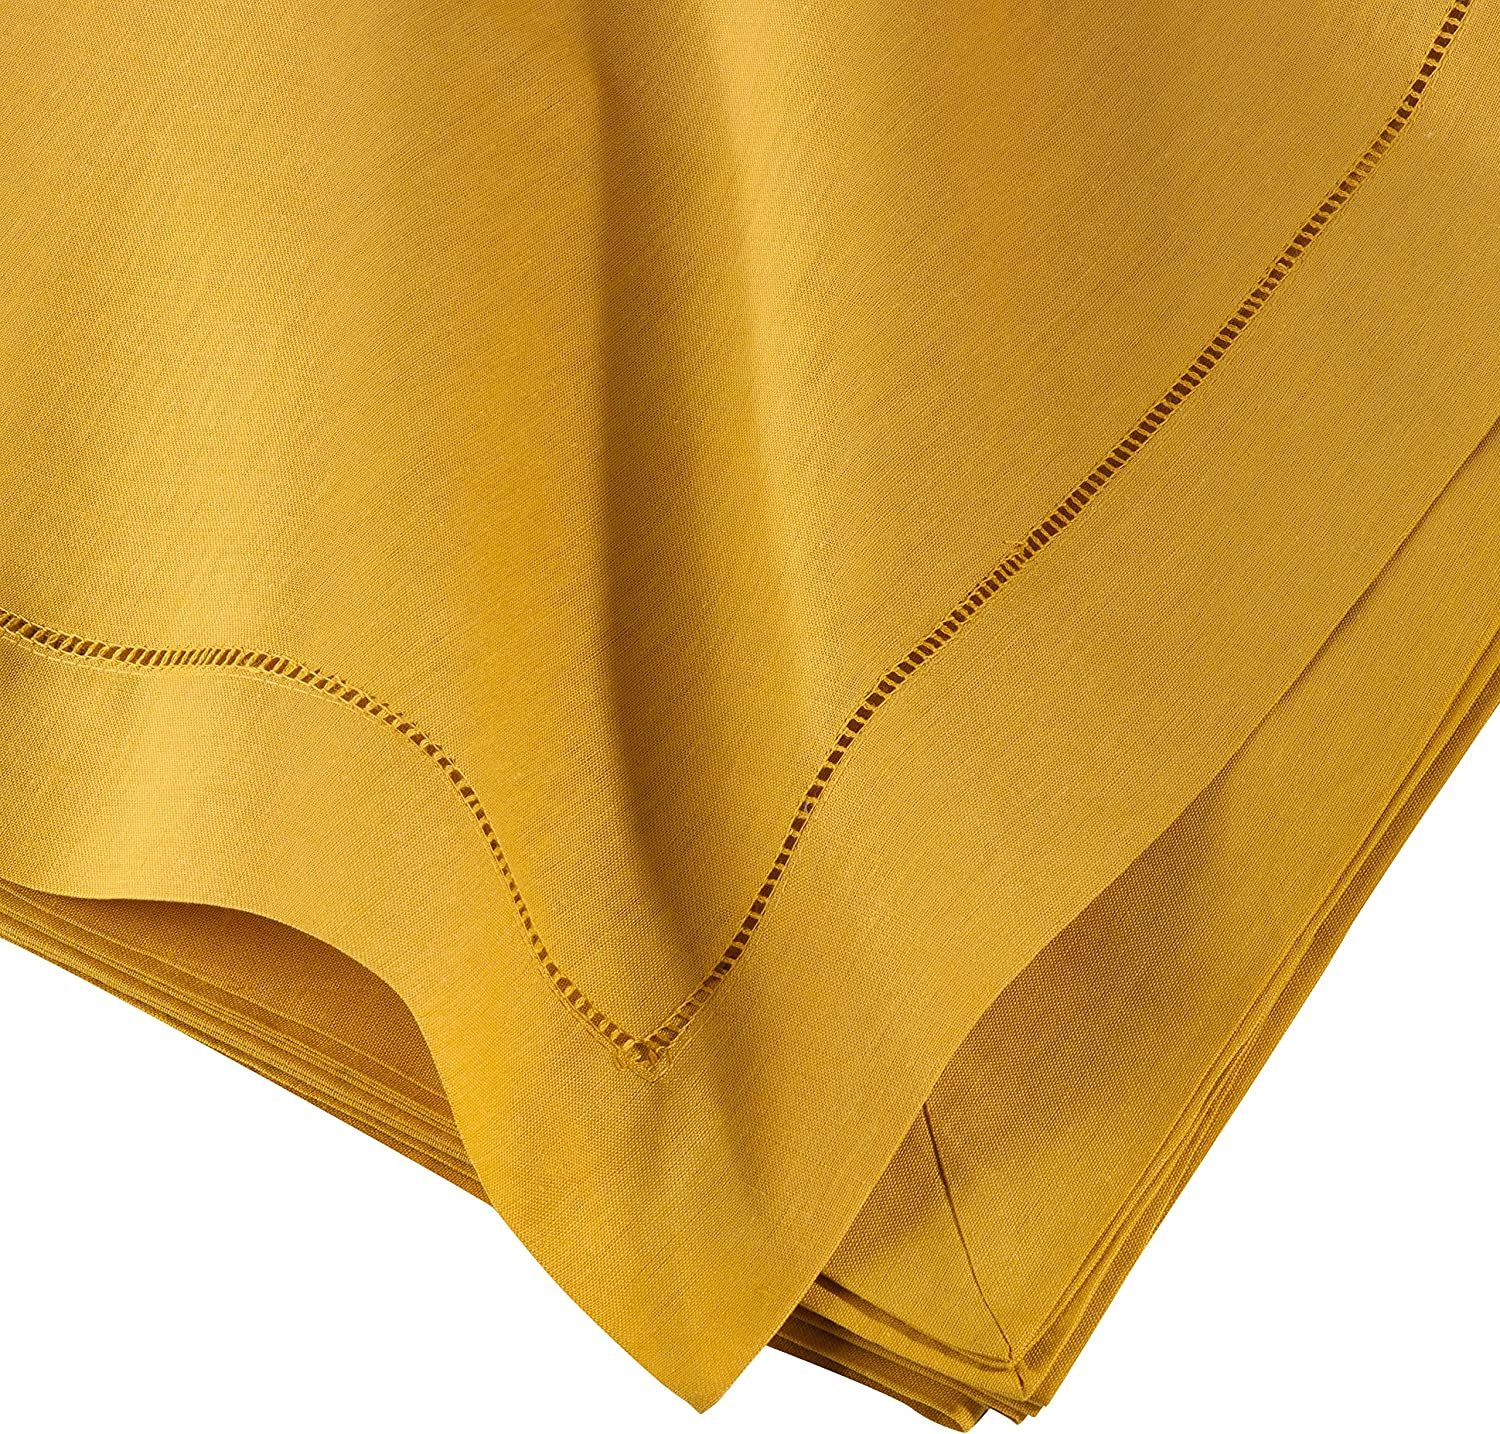 SARO LIFESTYLE 6100C Tablecloth Mustard 65 by104 Inch Oblong, SIL Per 1 Piece